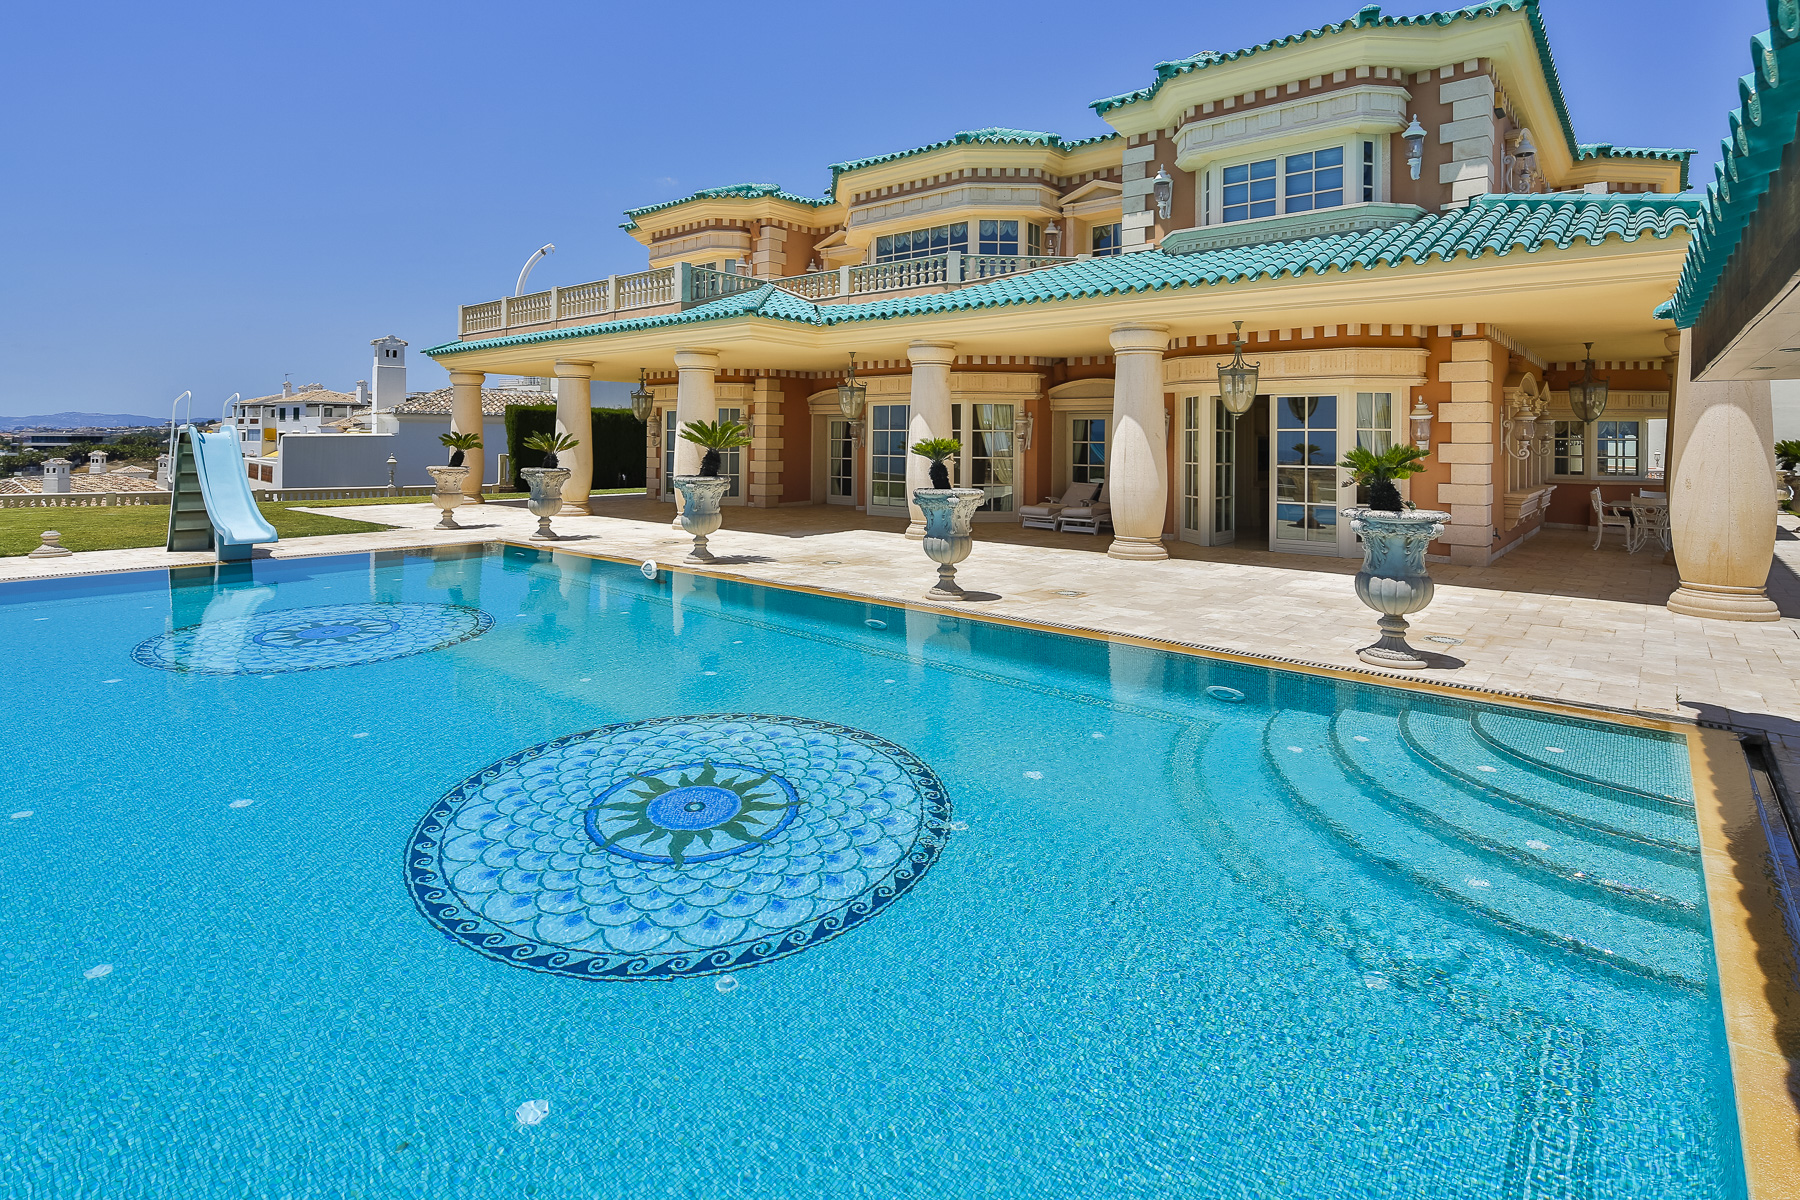 Single Family Home for Sale at Stunning villa with fabulous views over entire coastline Benalmadena, Andalucia, Spain